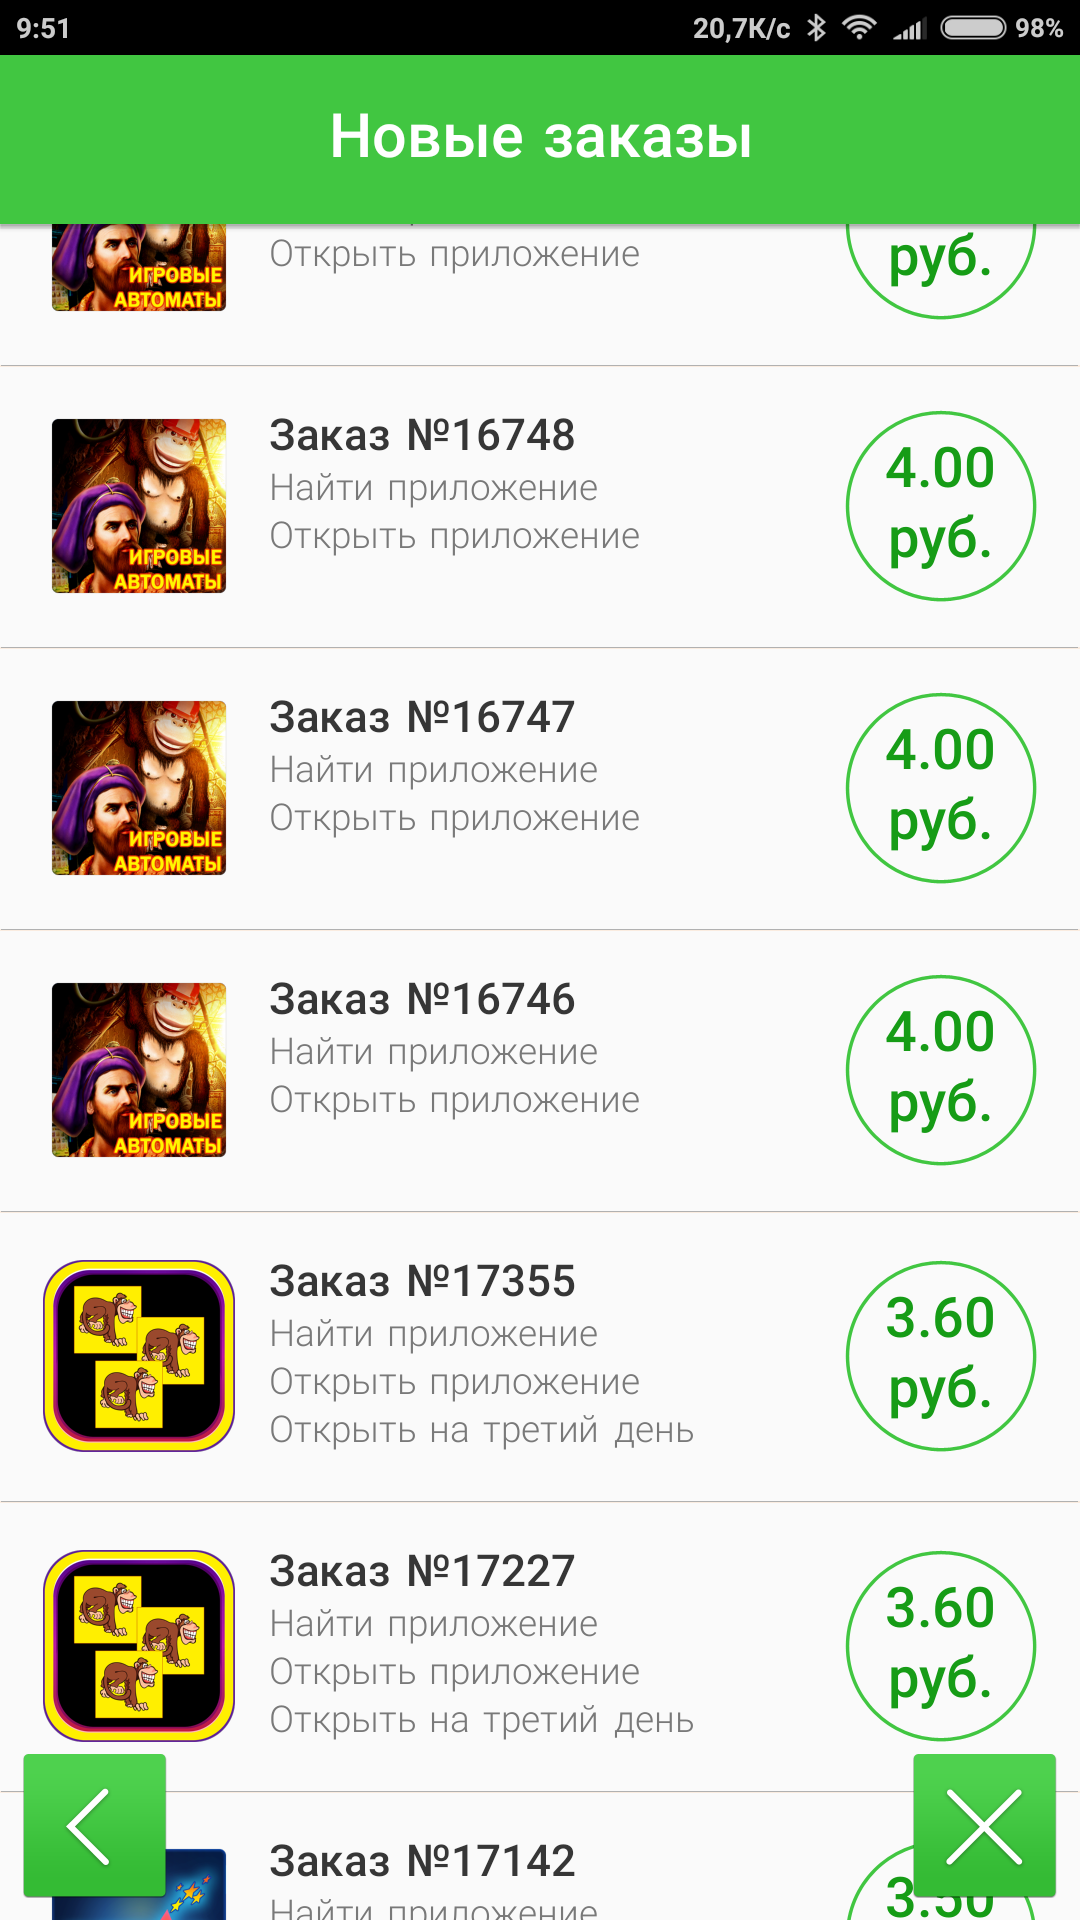 Задания в AdvertApp